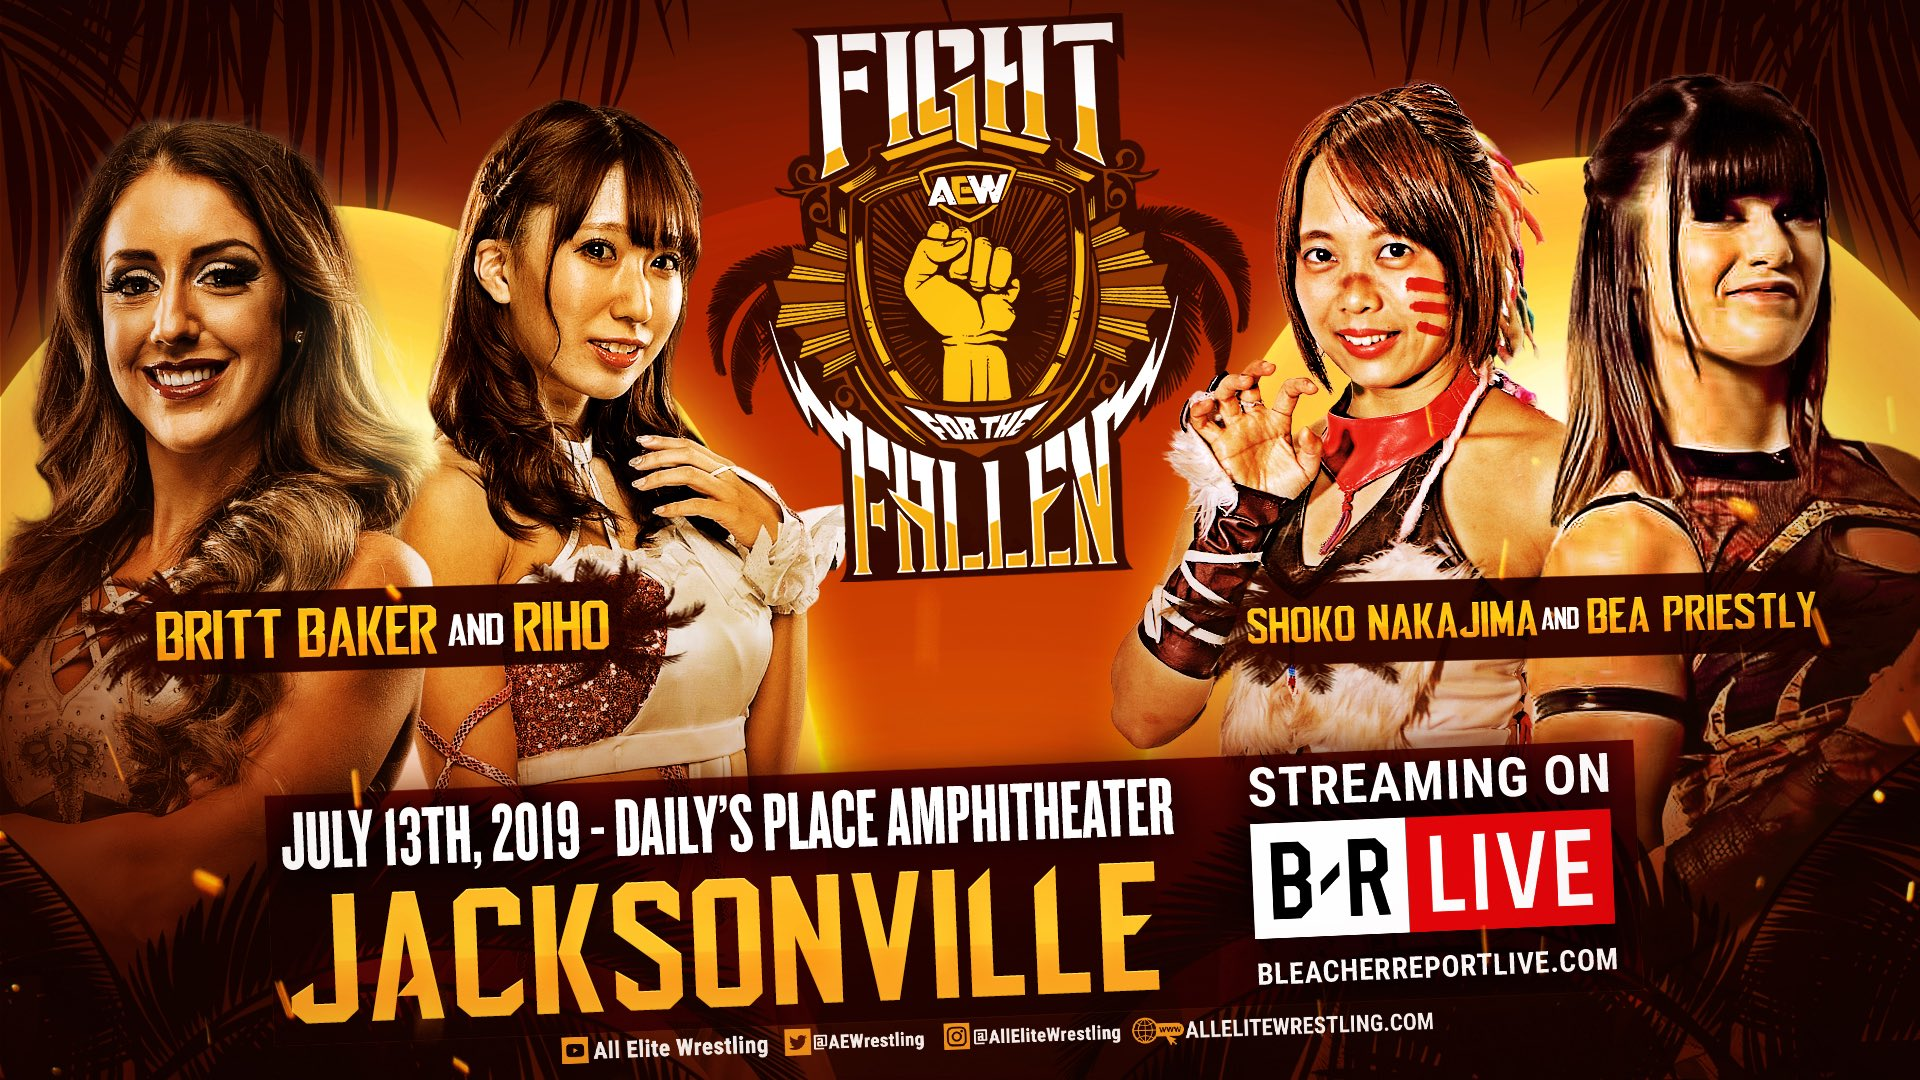 New Women's Match Announced For AEW's Fight For The Fallen